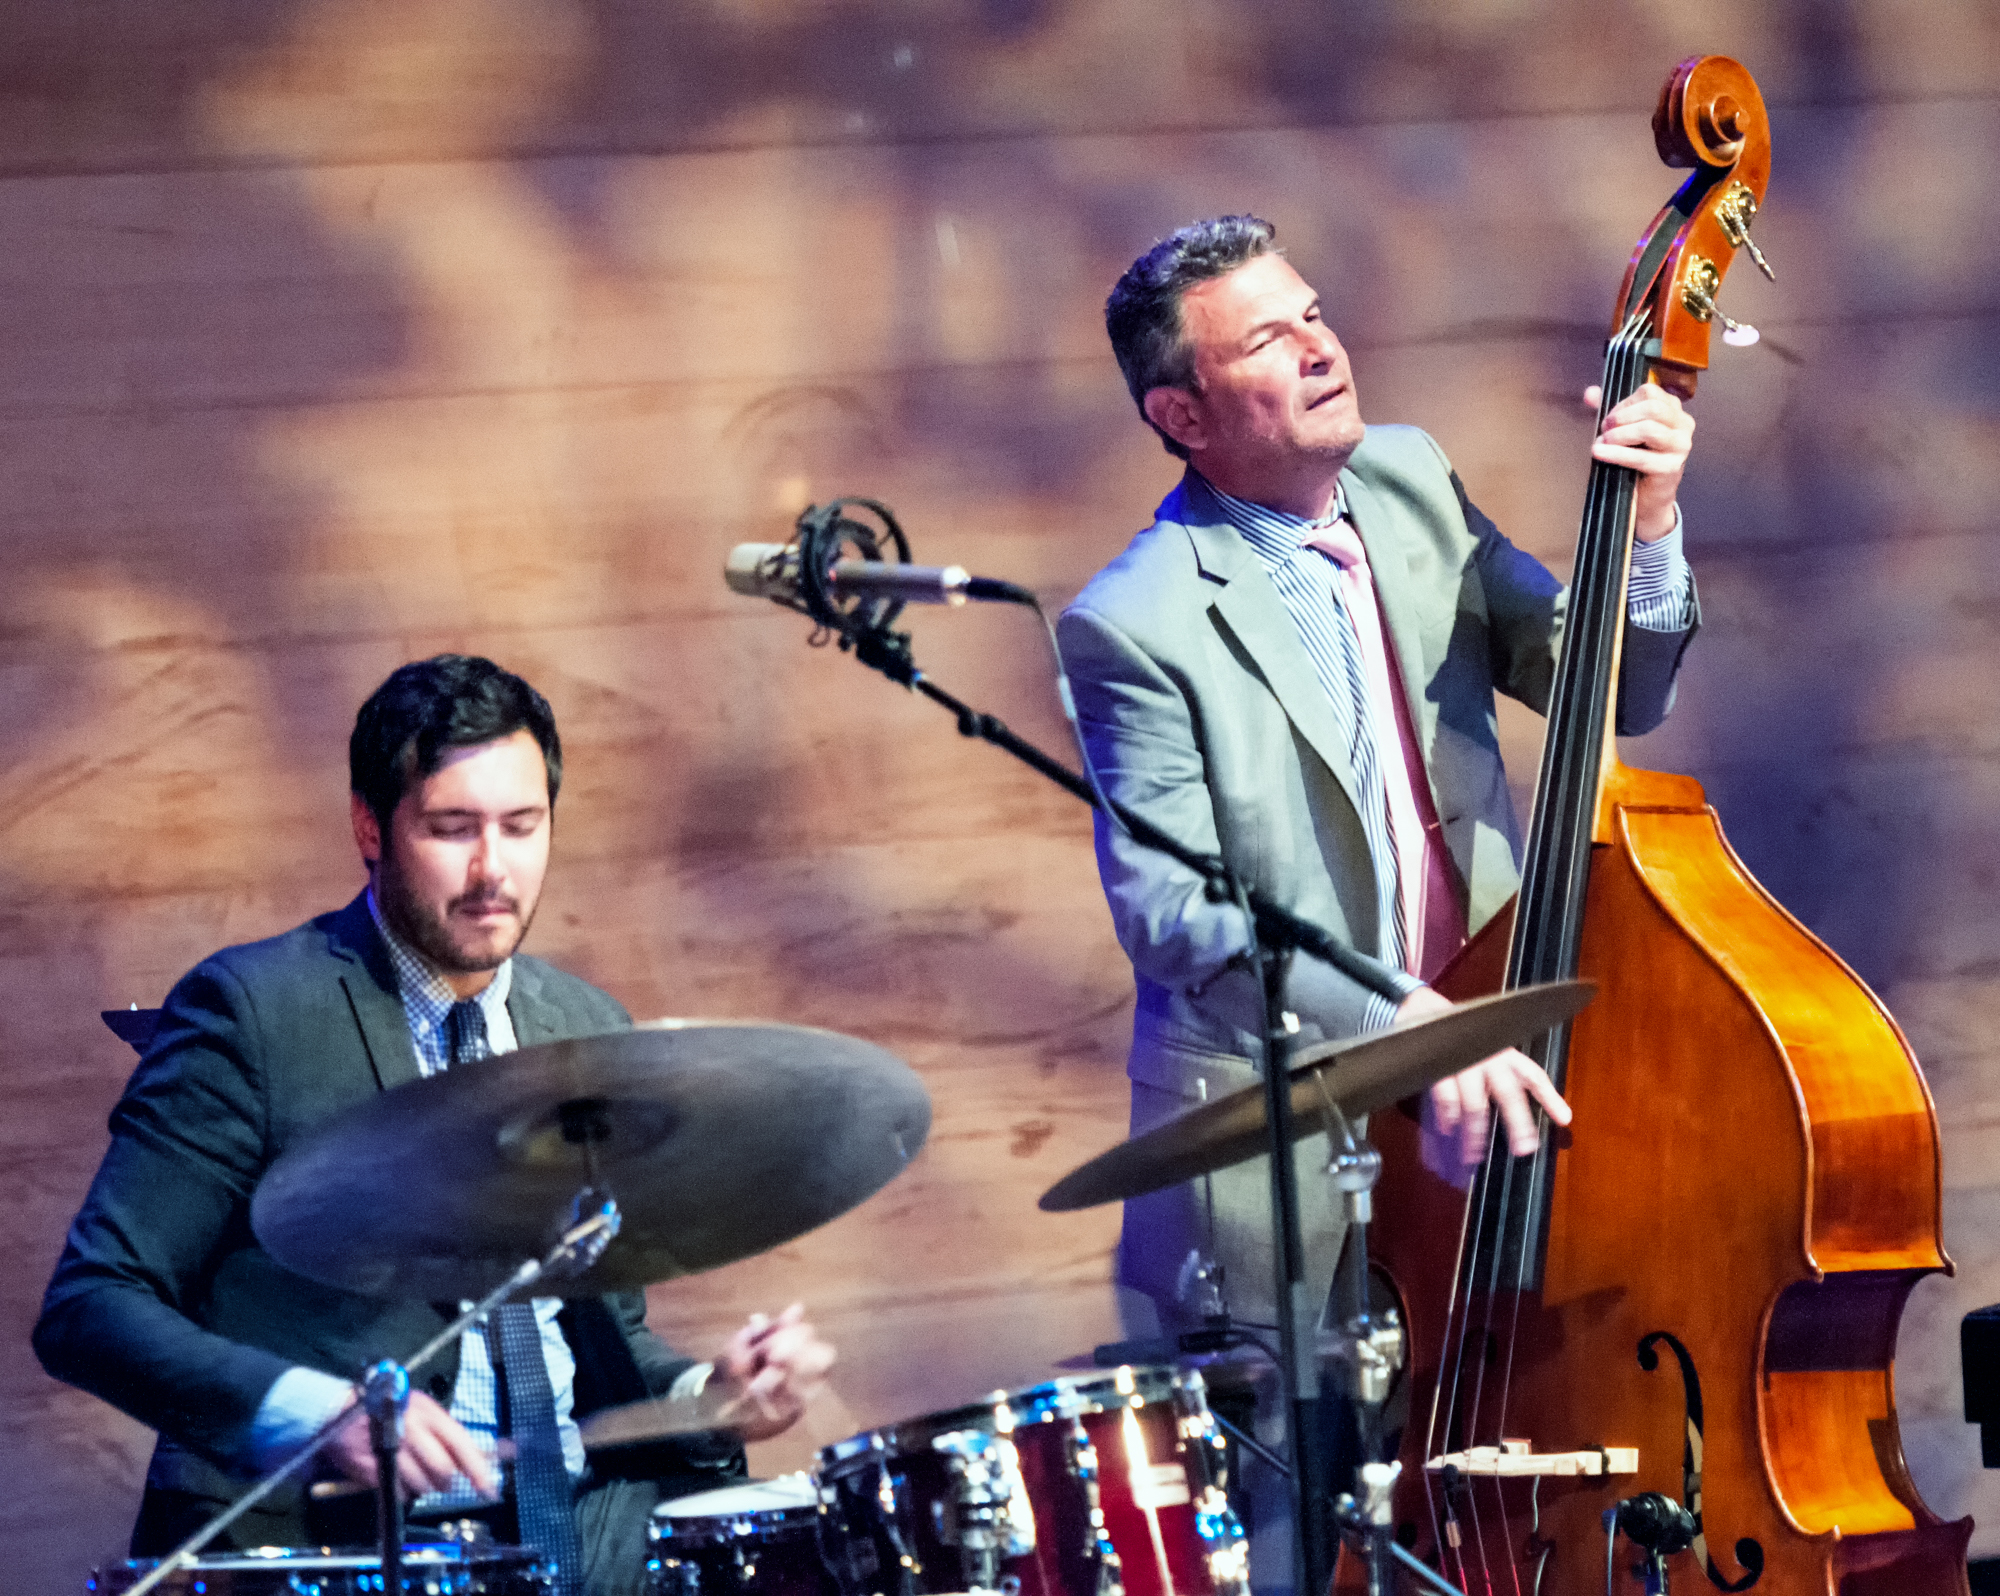 Kevin Kanner And Martin Pizzarelli With The John Pizzarelli Quartet At The Musical Instrument Museum (mim) In Phoenix